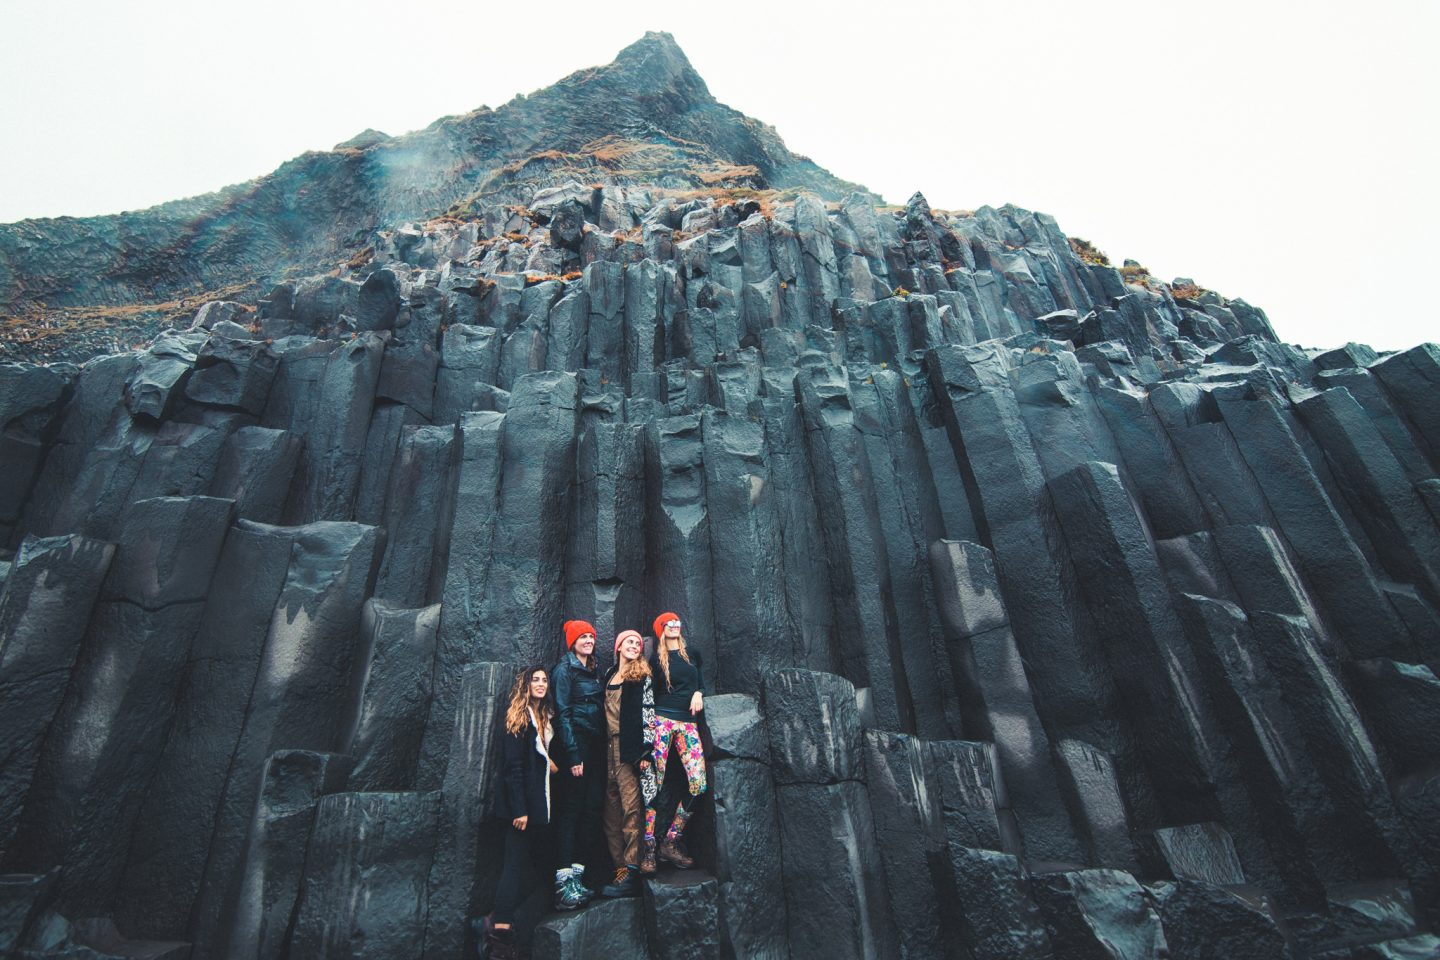 Basalt Columns on Reynisfjara Black Sand Beach, Iceland | @lisahomsy | check out the blogpost on www.lisahomy.com